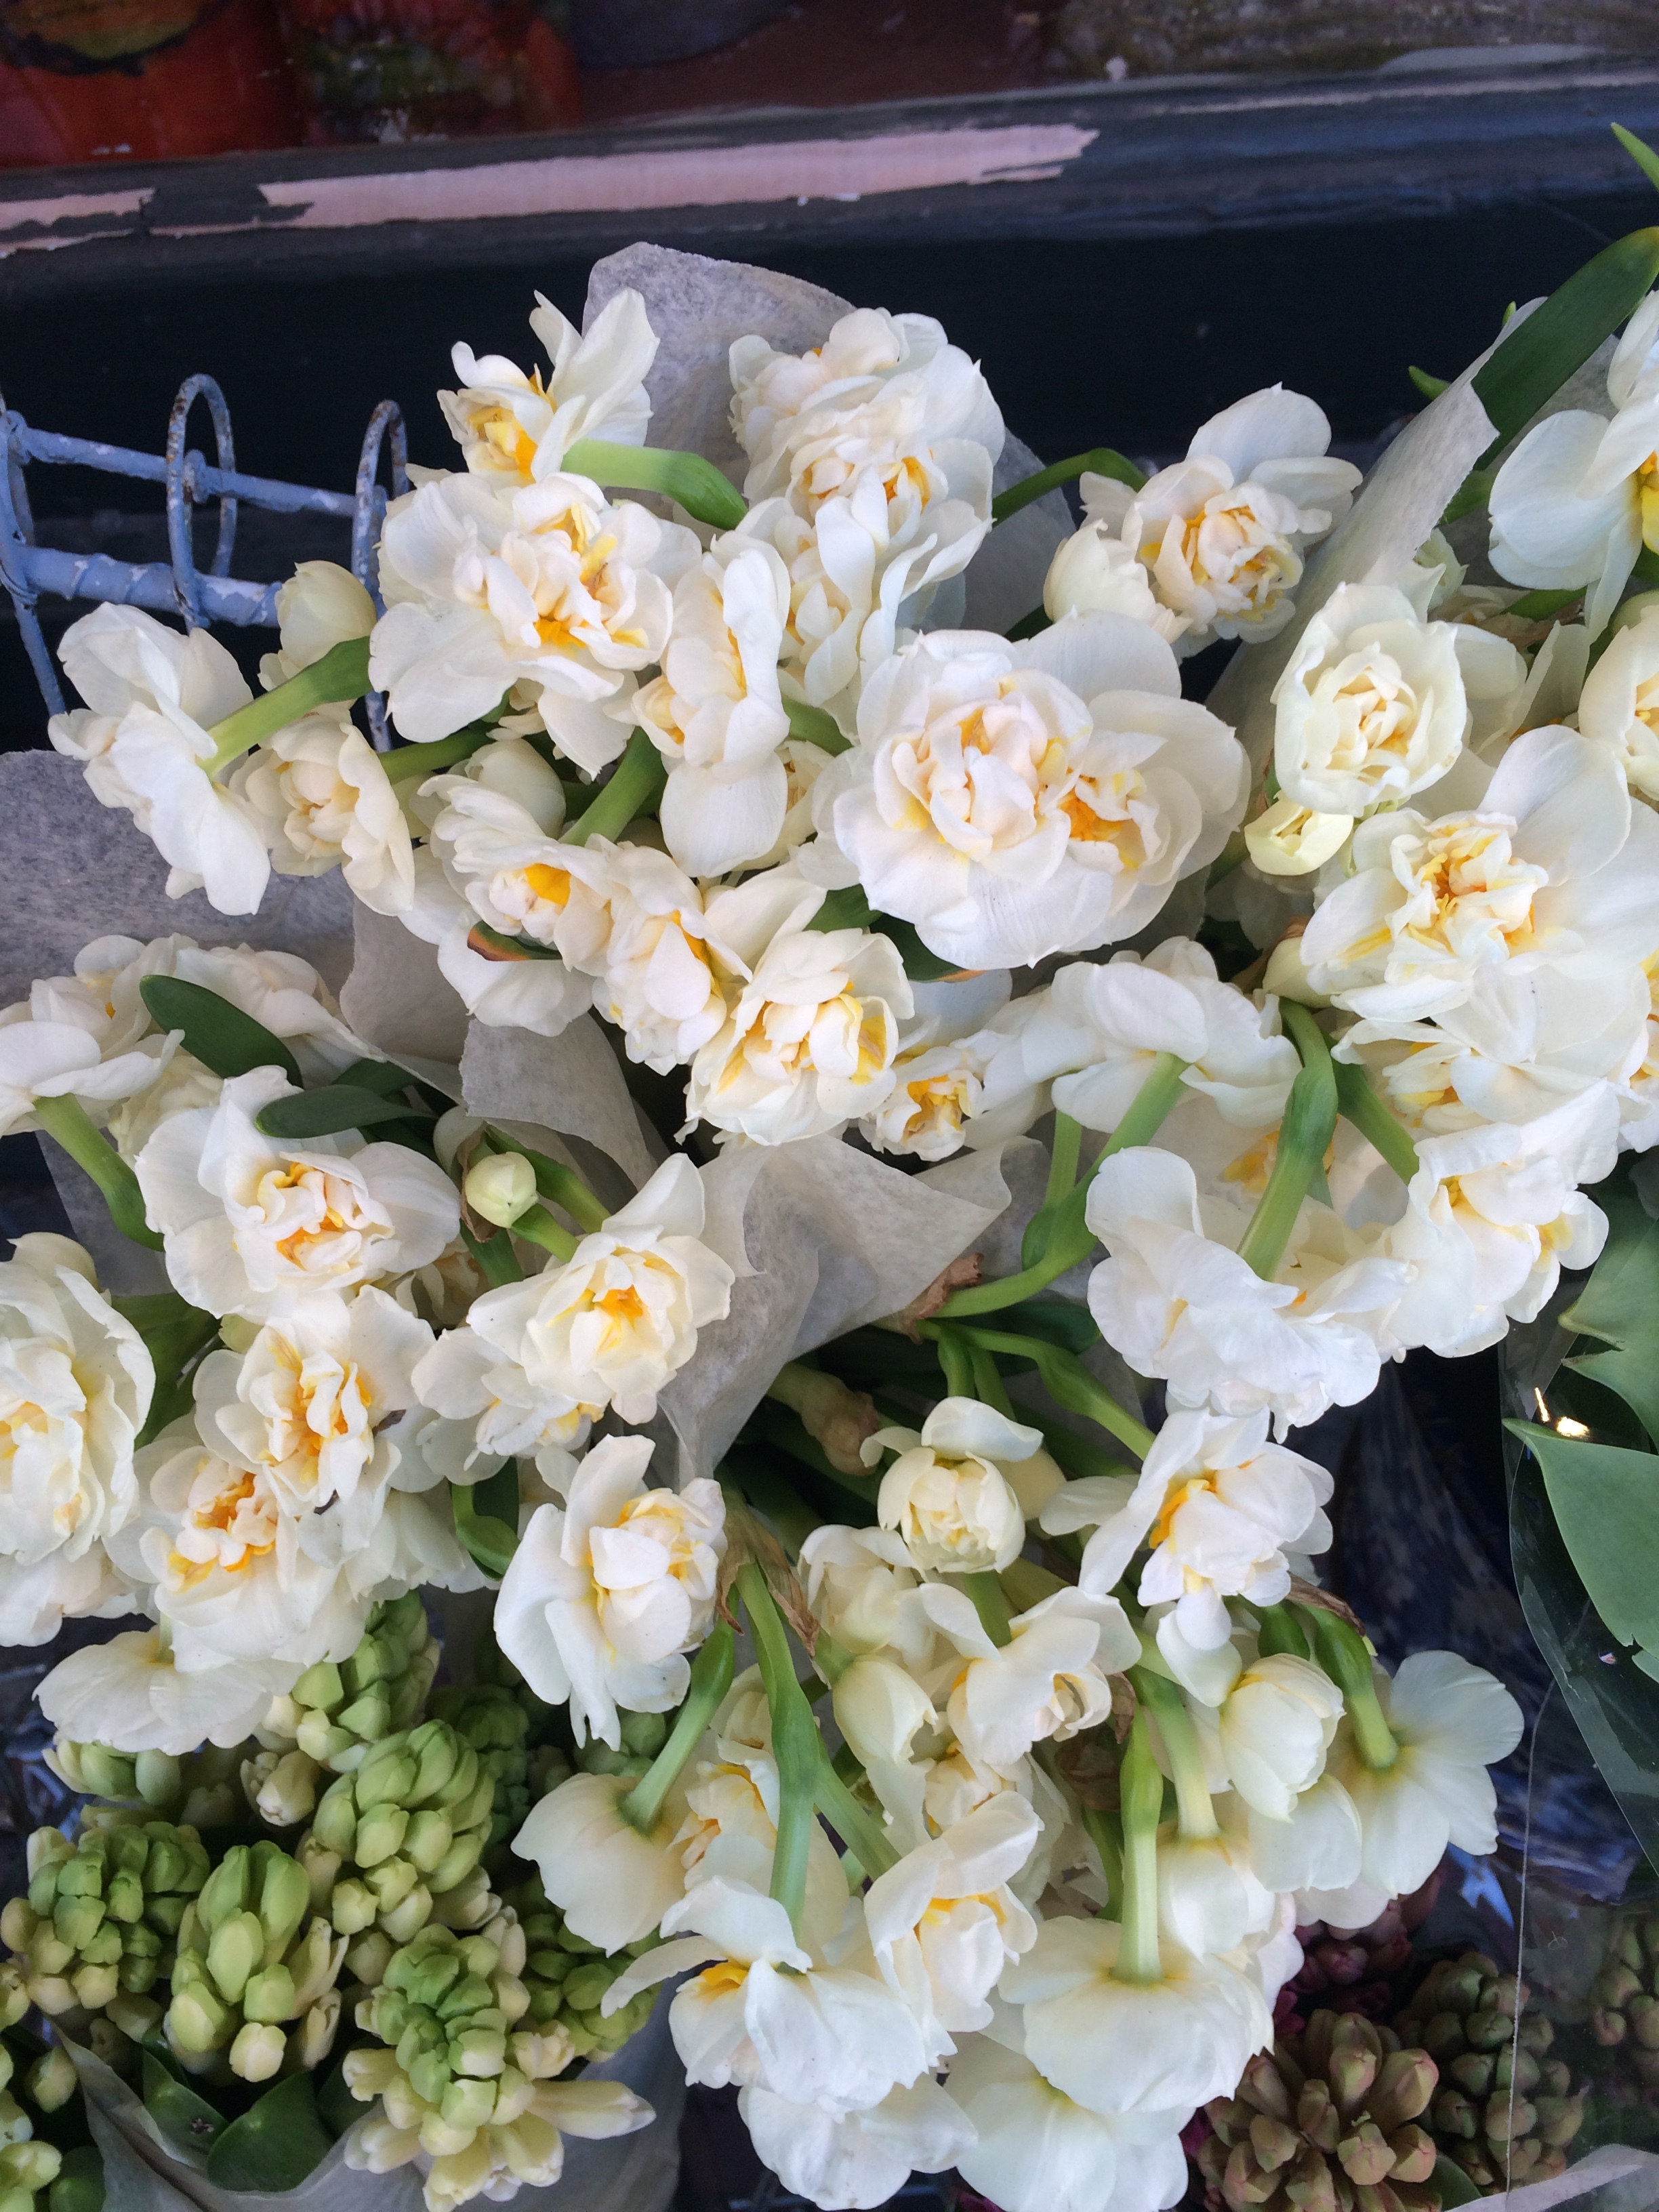 Heavenly scented paper-whites in creamy whites and golds.